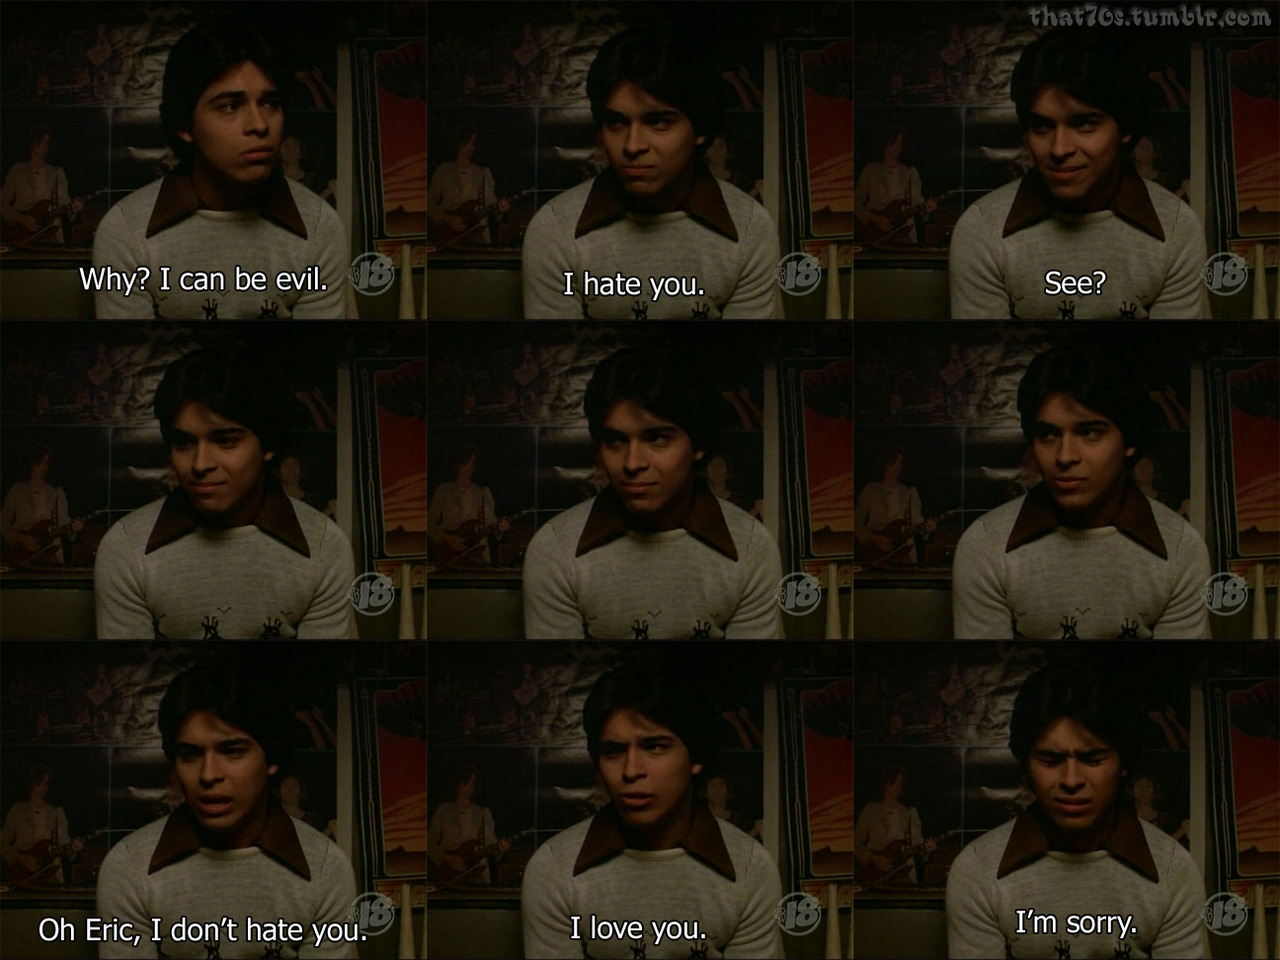 fez and that 70's show image